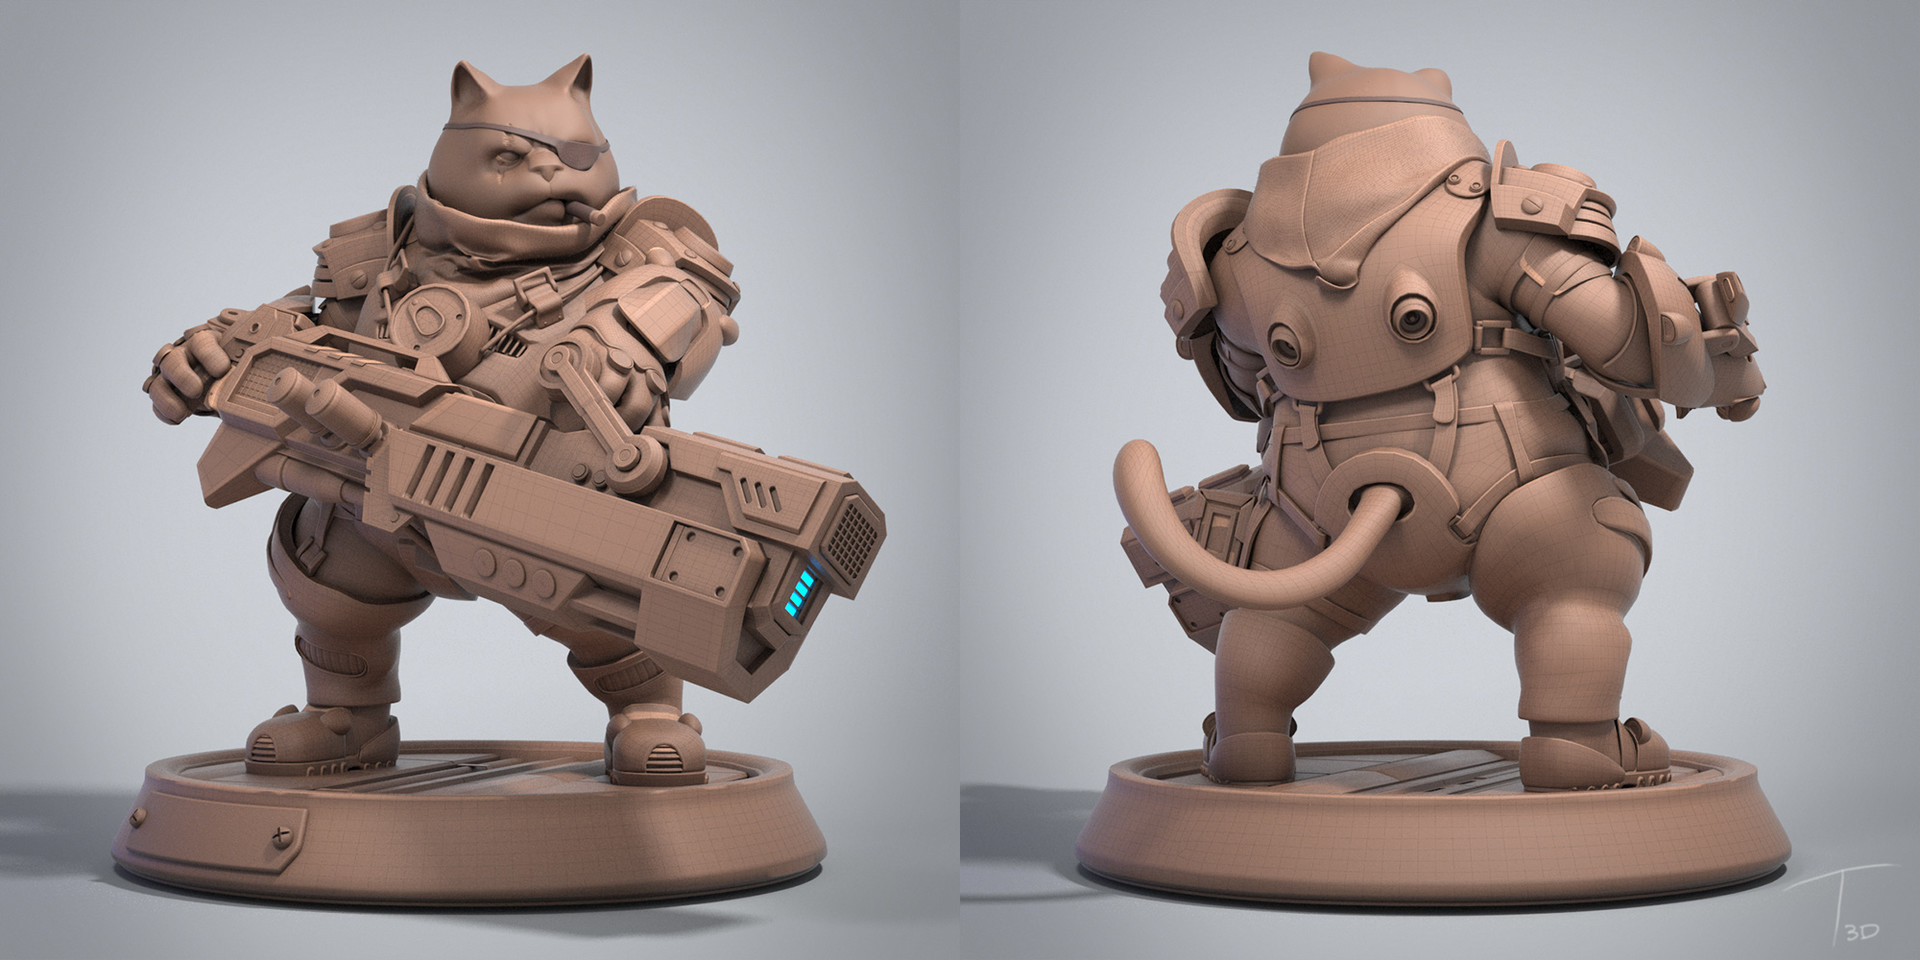 Kevin beckers rockd cat clay